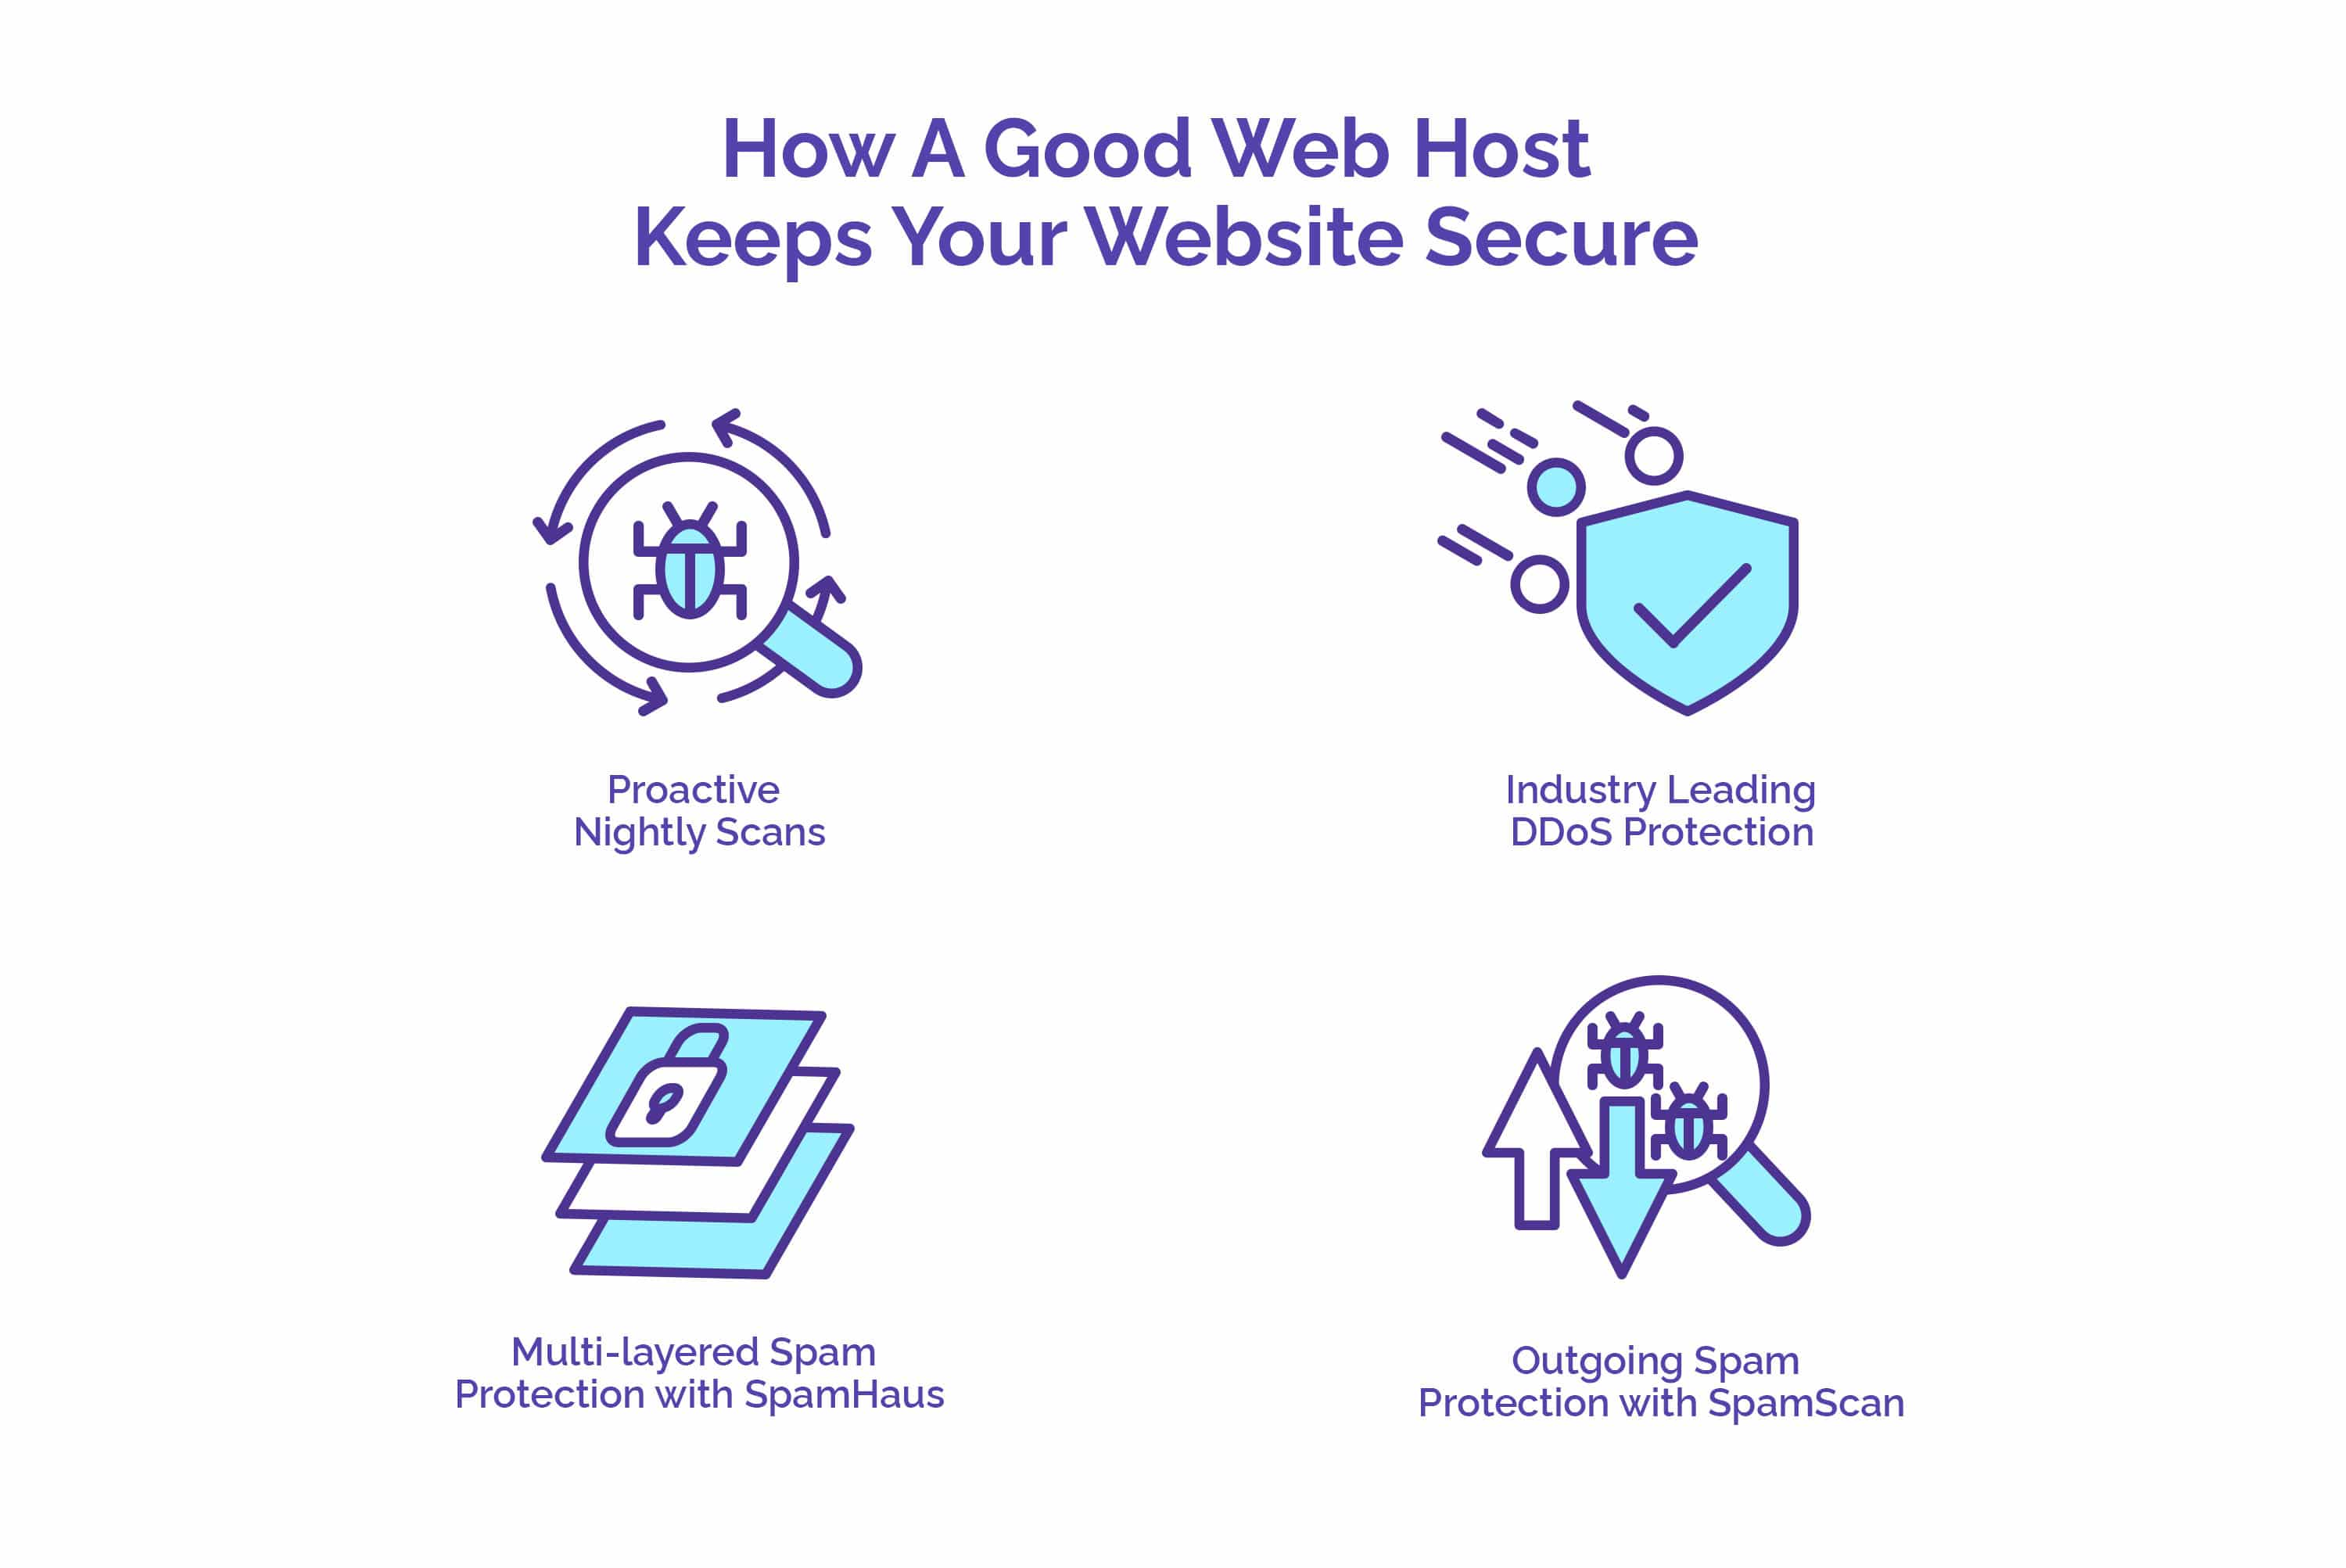 How A Good Web Host Keeps Your Website Secure